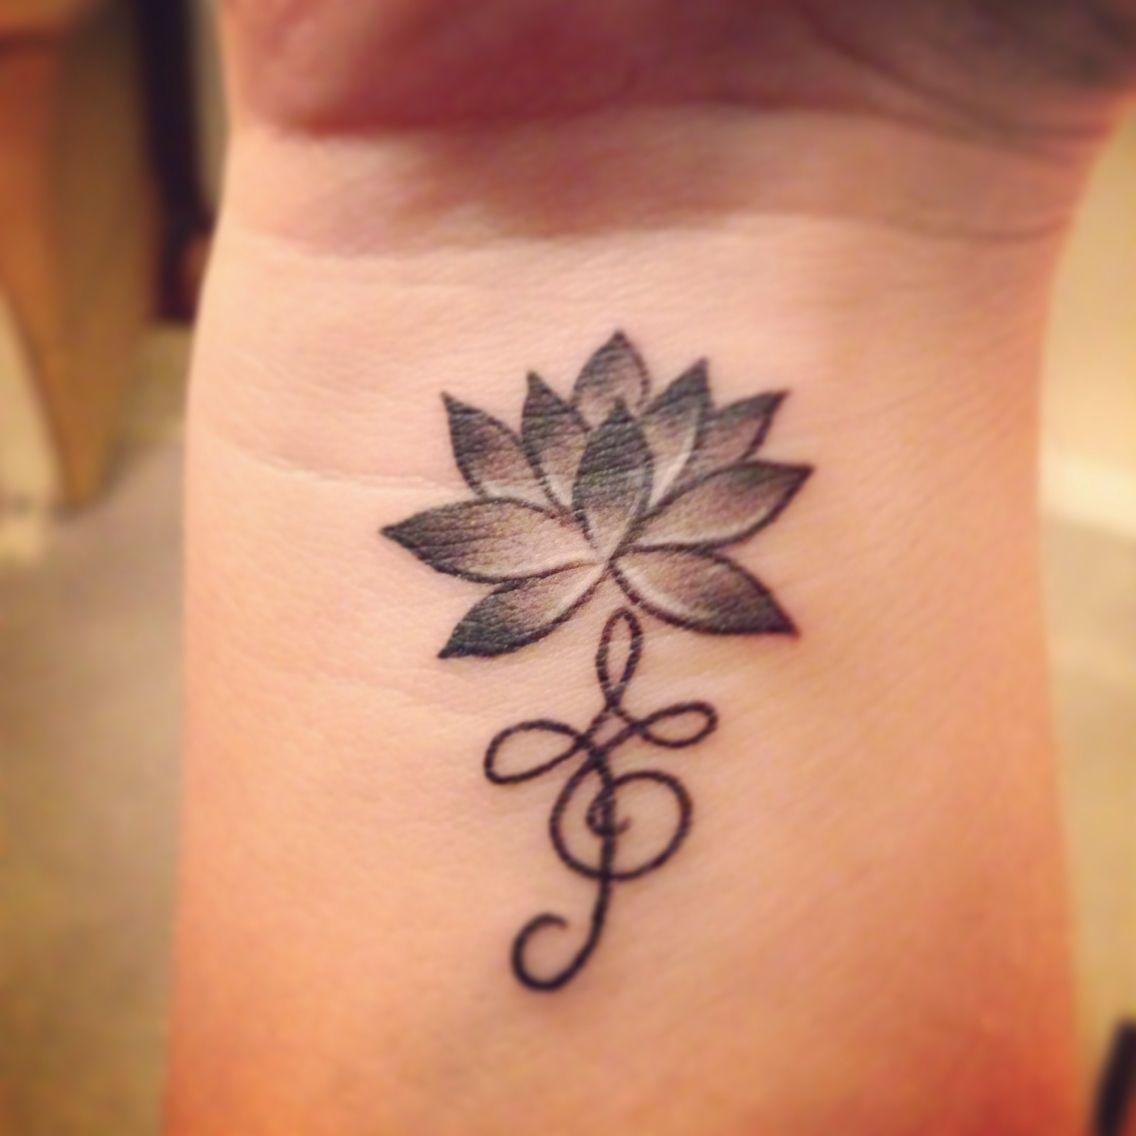 Lotus flower for strength and beauty zibu symbol meaning embrace lotus flower for strength and beauty zibu symbol meaning embrace life marking my nieces lilys 1st birthday izmirmasajfo